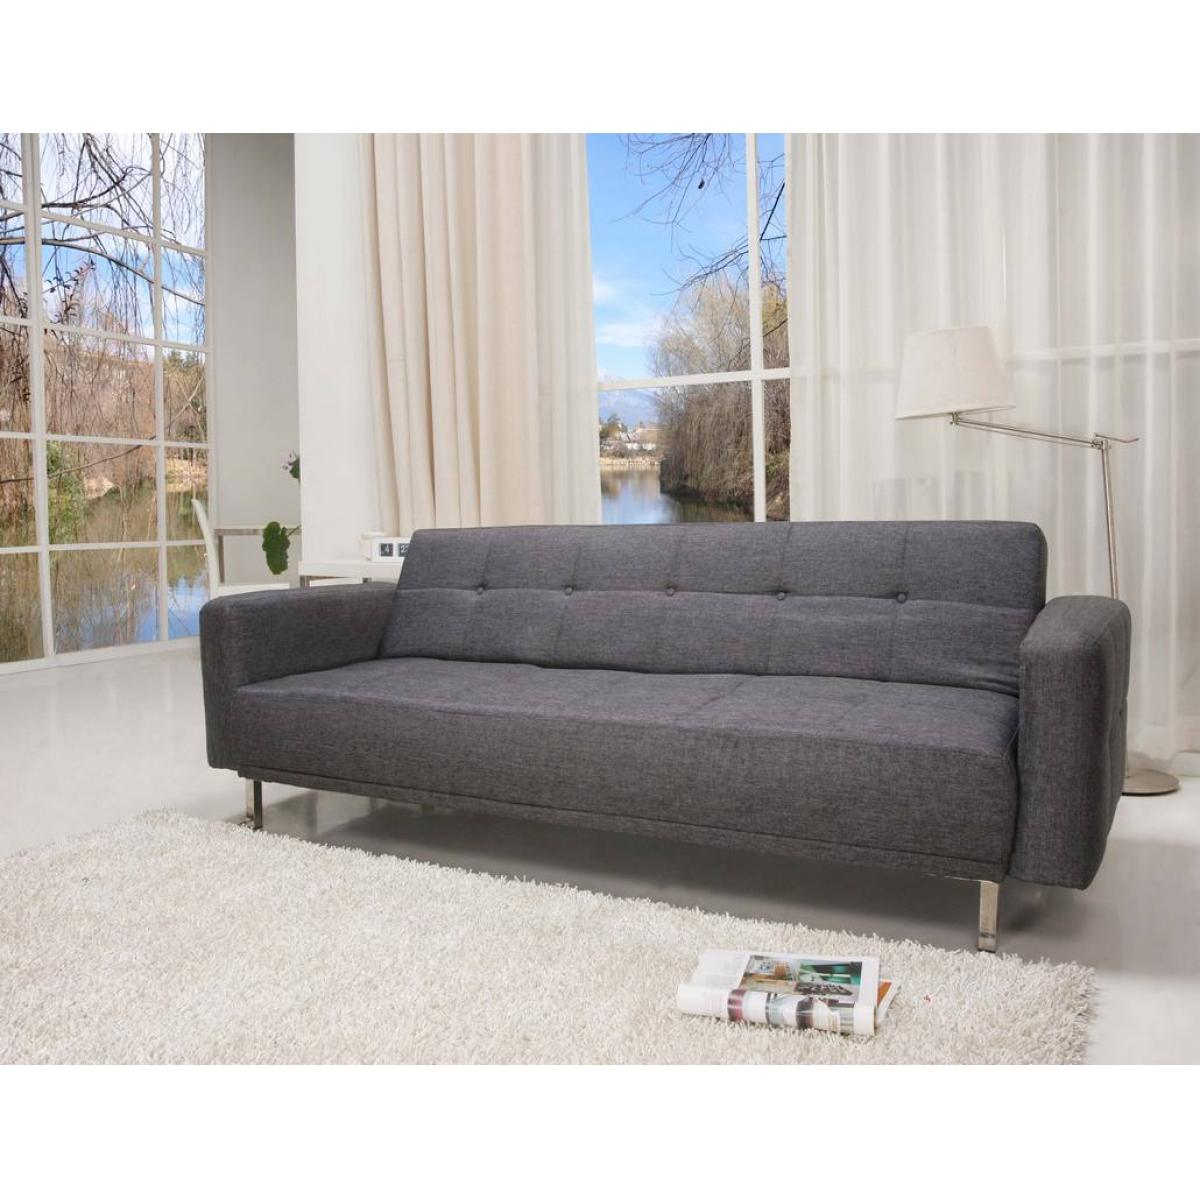 schlafcouch schlafsofa couch sofa schlaffunktion sofagarnitur stoff grau ebay. Black Bedroom Furniture Sets. Home Design Ideas